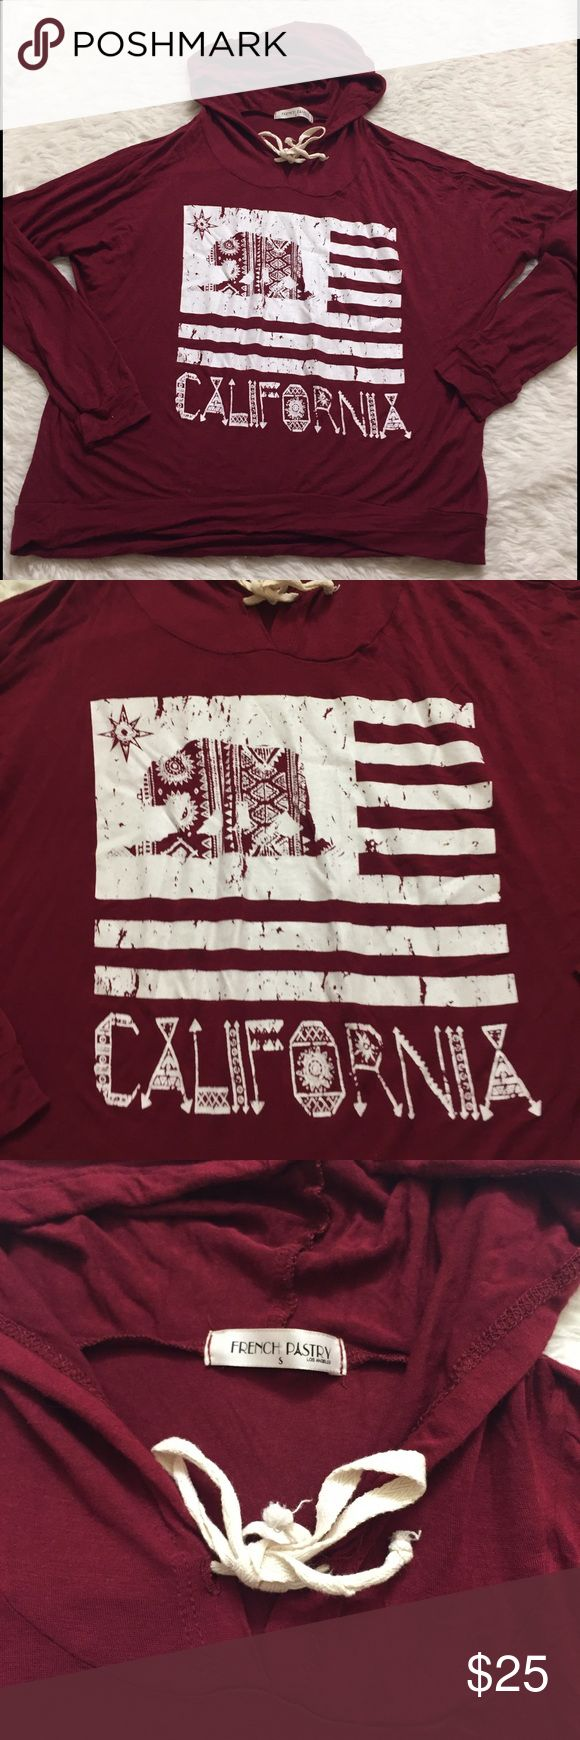 Soft maroon California logo sweater Super soft material. Light weight sweatshirt, California flag french pastry Sweaters